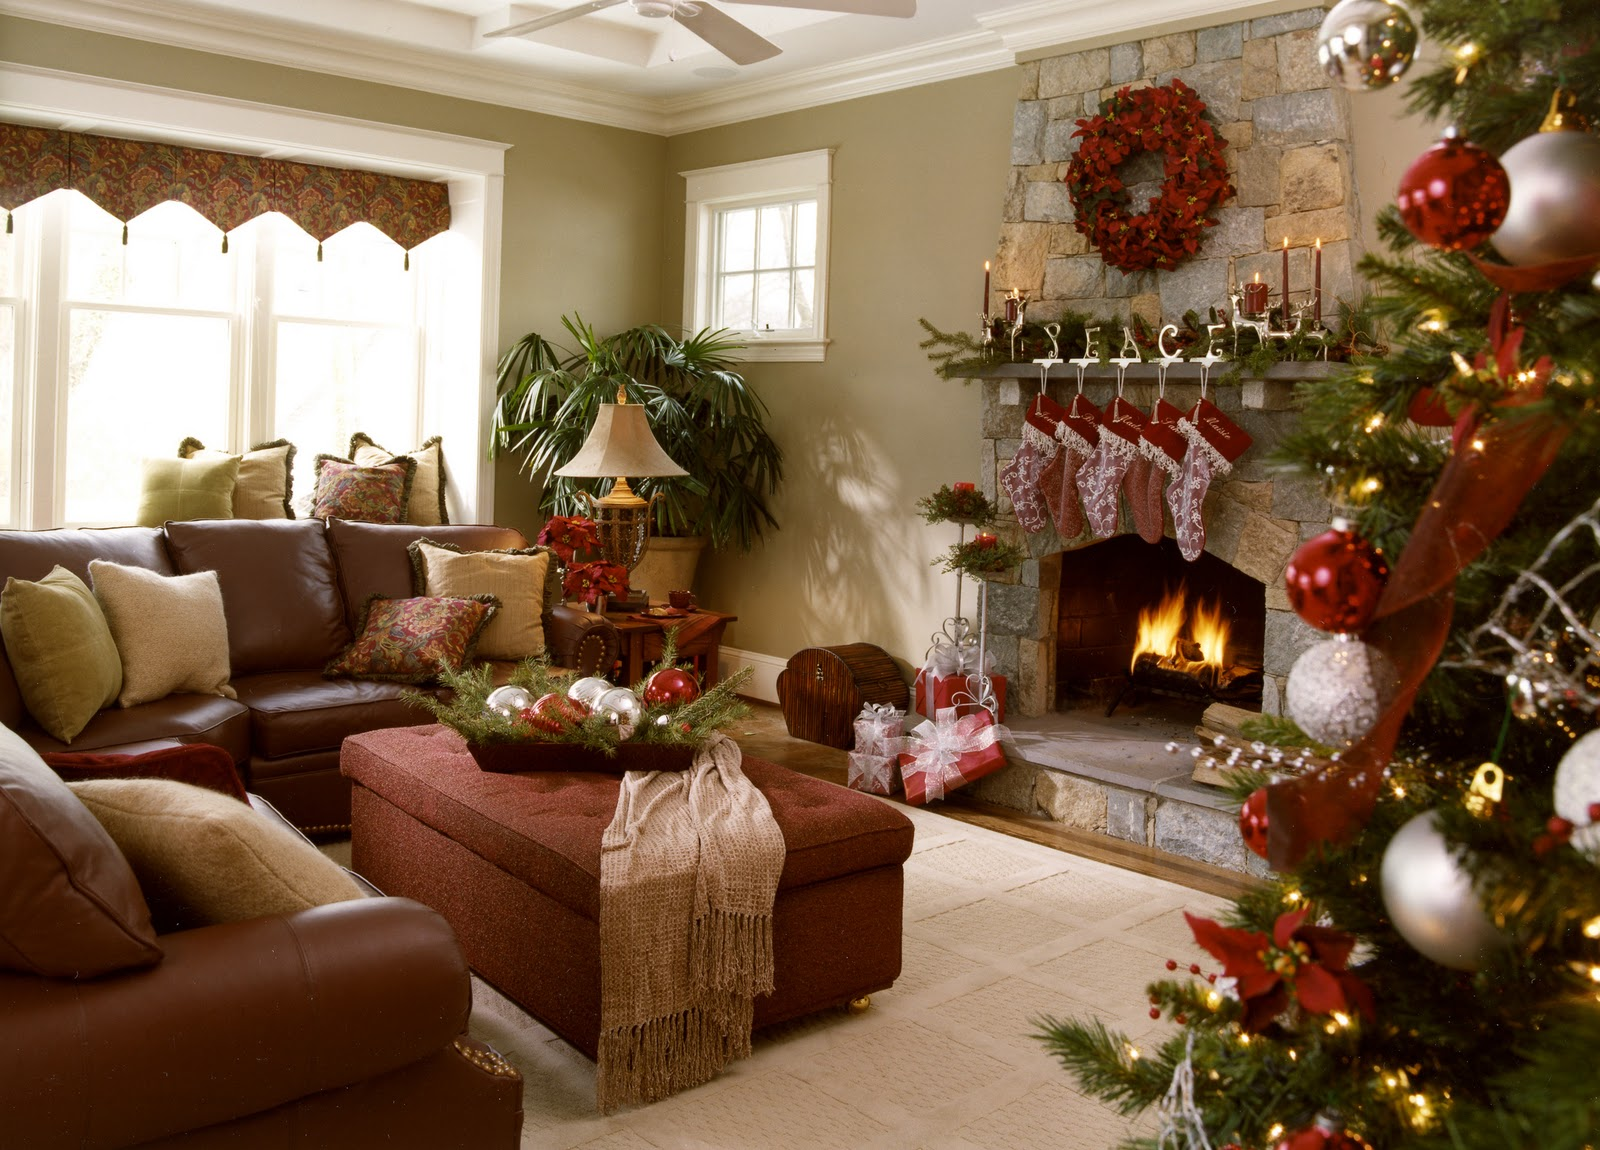 50 Images Of Astonishing Christmas Living Room Decorating Ideas Hausratversicherungkosten